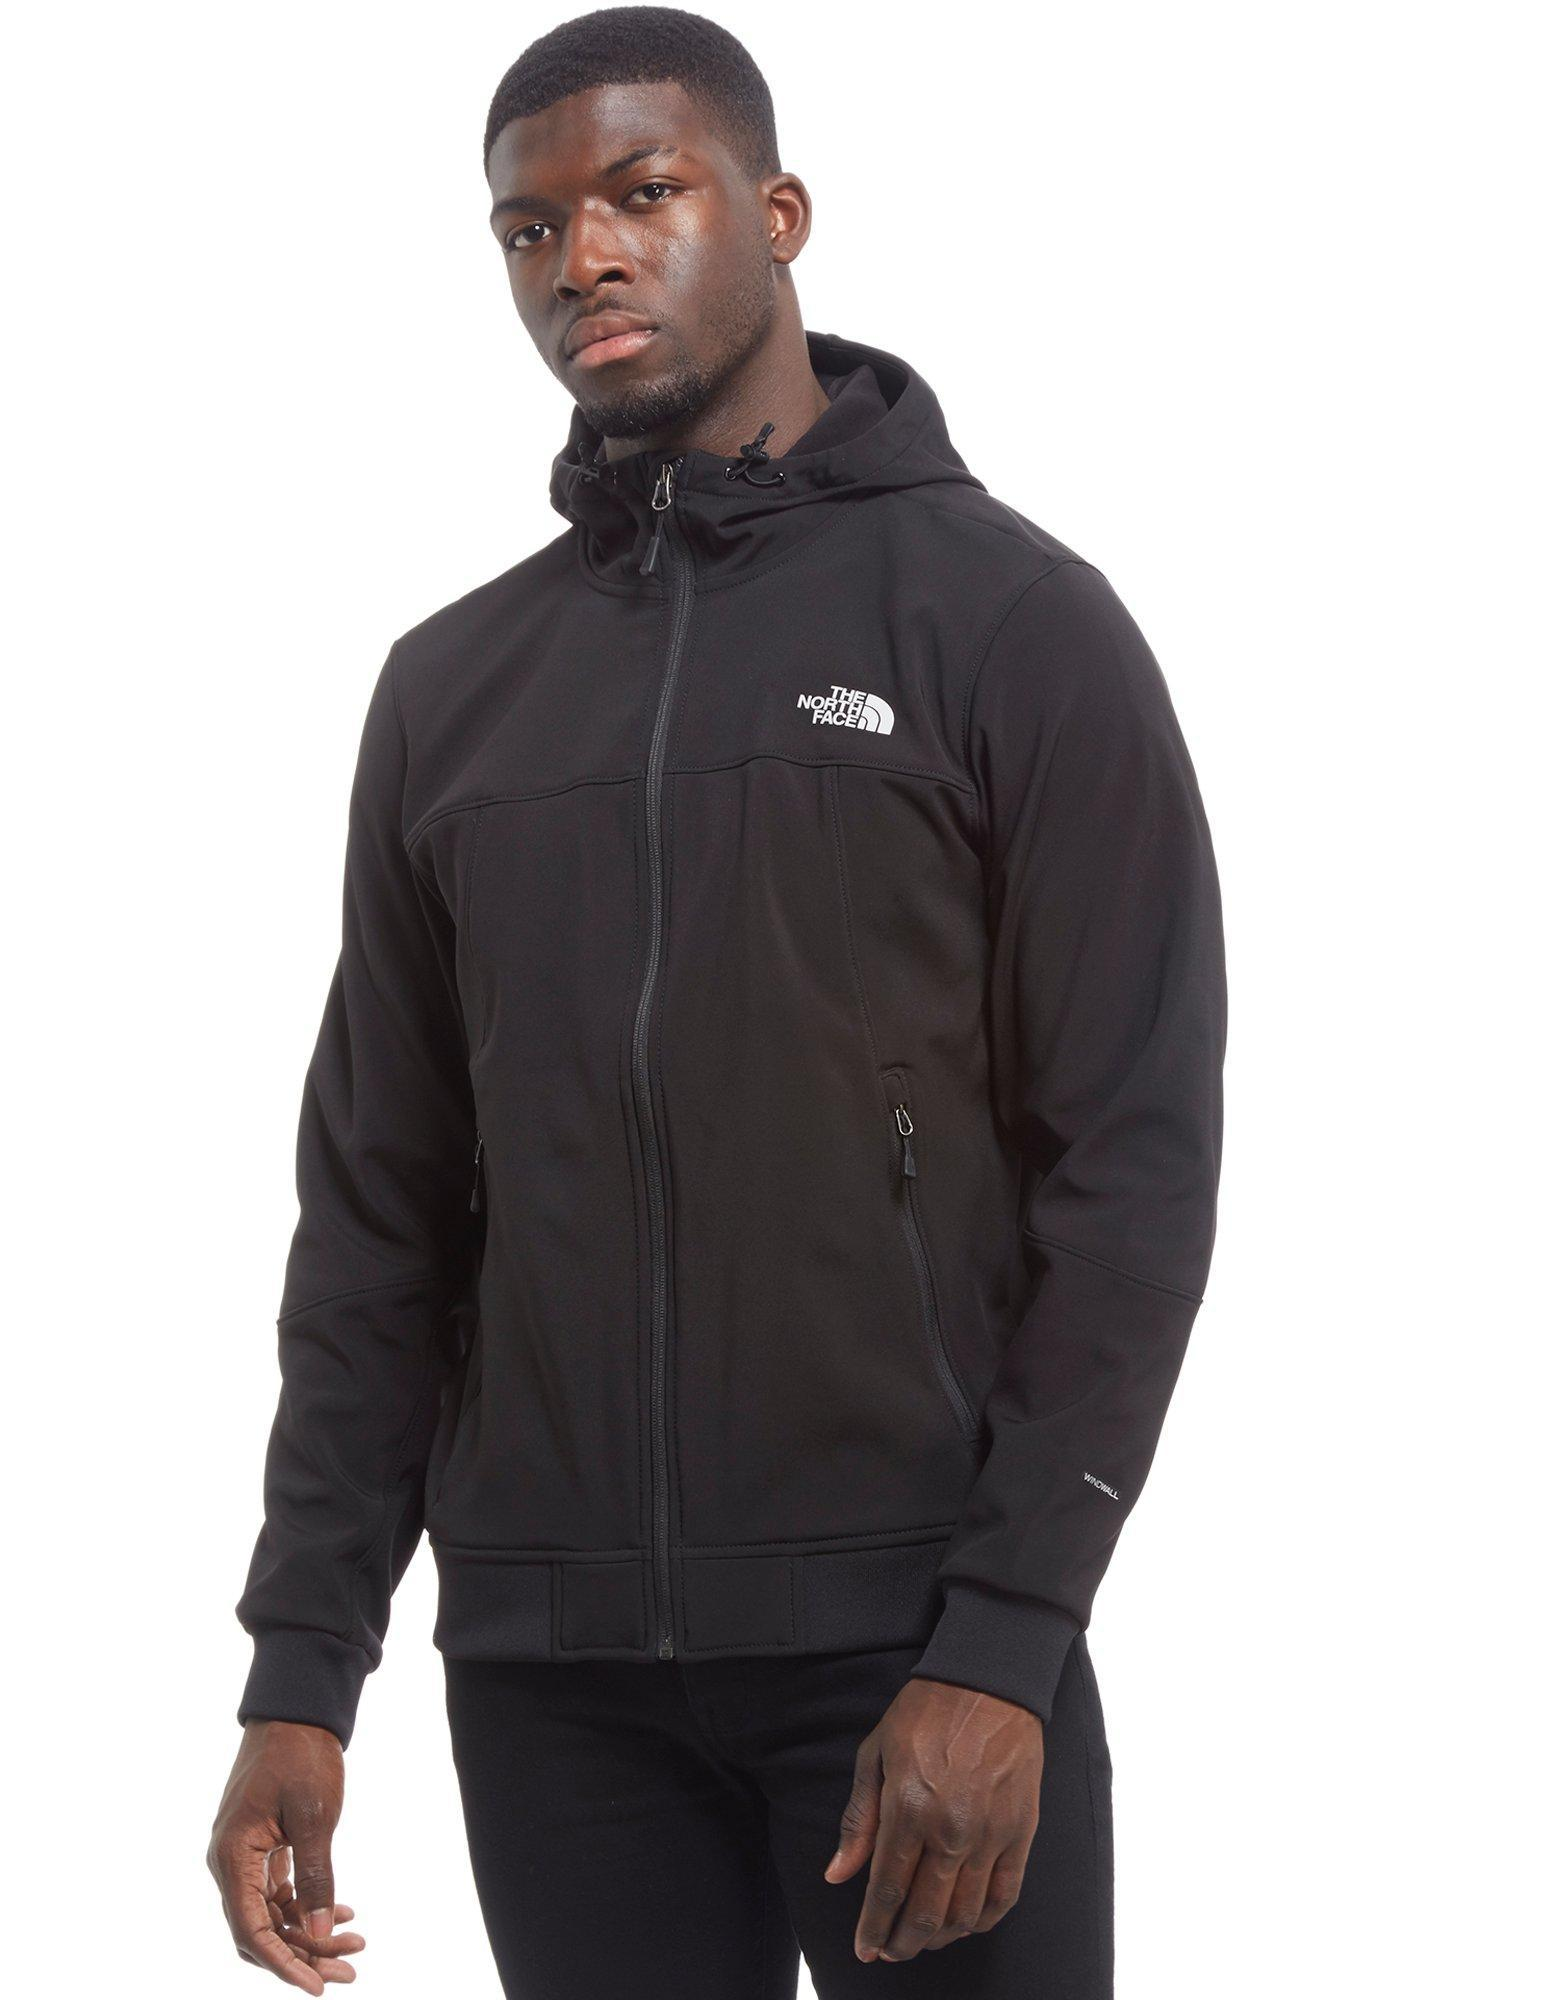 294ab7db6fae ... wholesale lyst the north face millbrook softshell bomber jacket in  black for men 05dac e4842